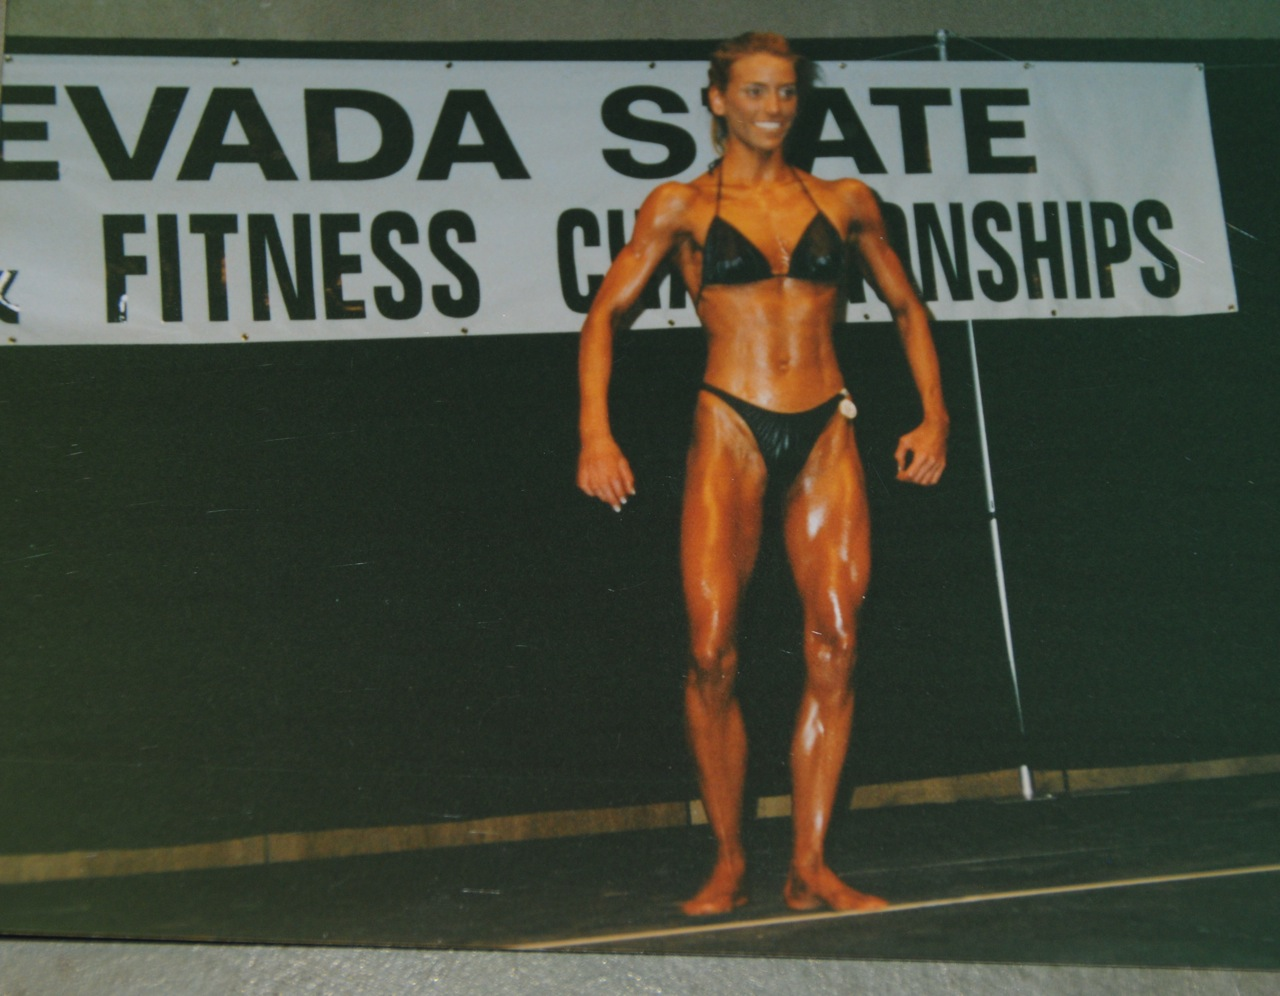 """2000 Nevada State Bodybuilding Competition (My idea of """"fit"""" and """"healthy"""" at the time. Boy did I have a lot to learn)."""